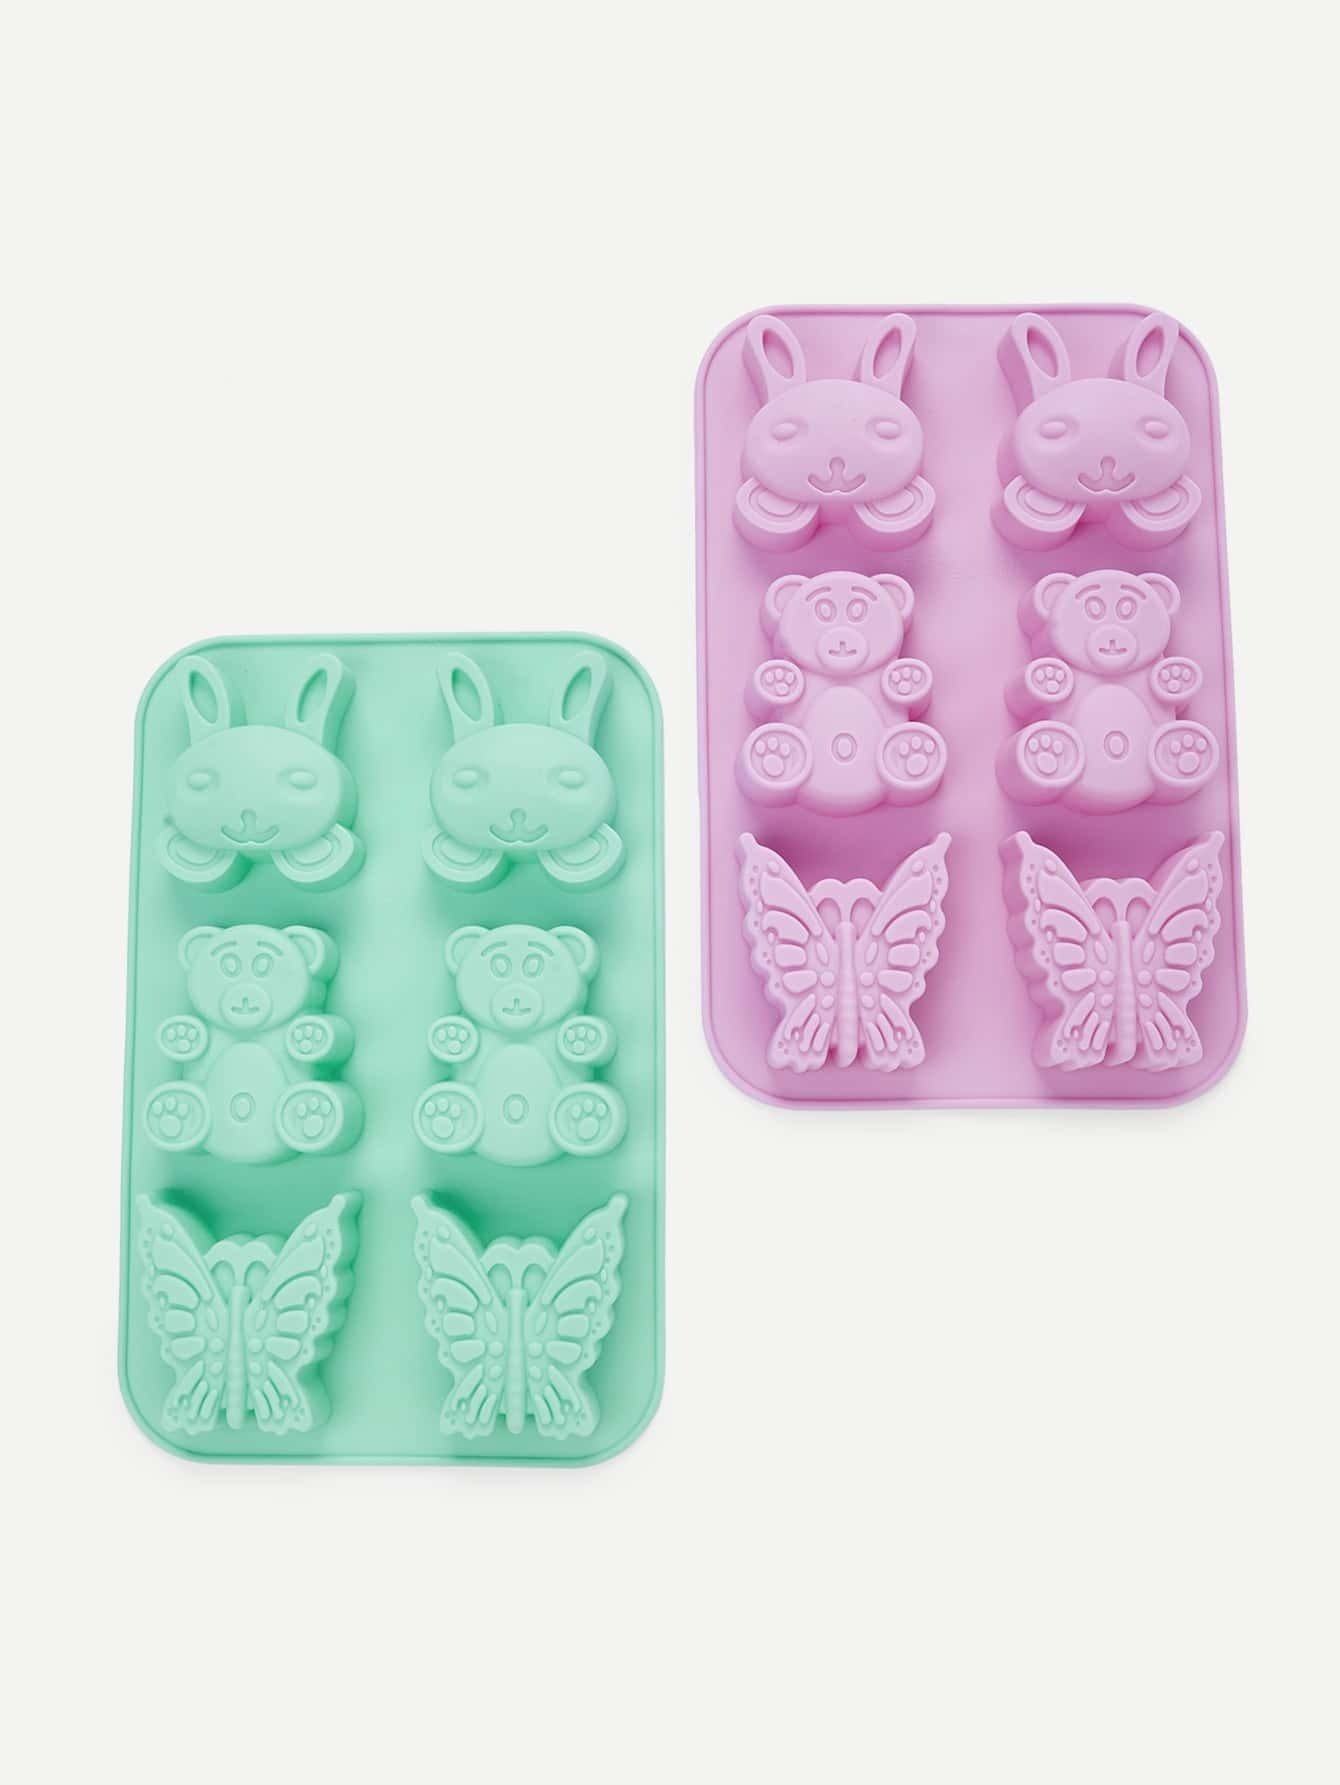 1Pc Random Color 6 Hole Animal Shaped Silicone Baking Mould